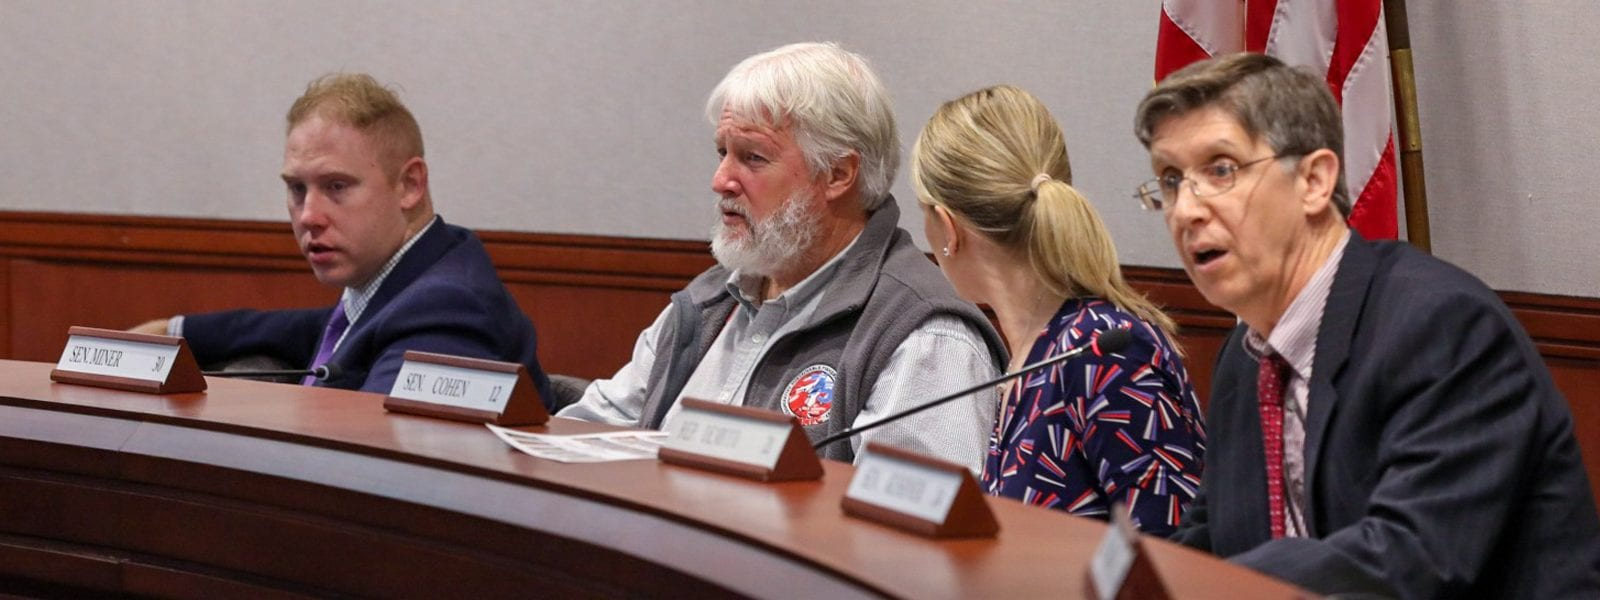 Sen. Miner Encourages Bi-Partisan Solutions for General Assembly's Environment Committee;  Several Waste and Recycling Concepts to be Drafted as Raised Bills during 2020 Legislative Session